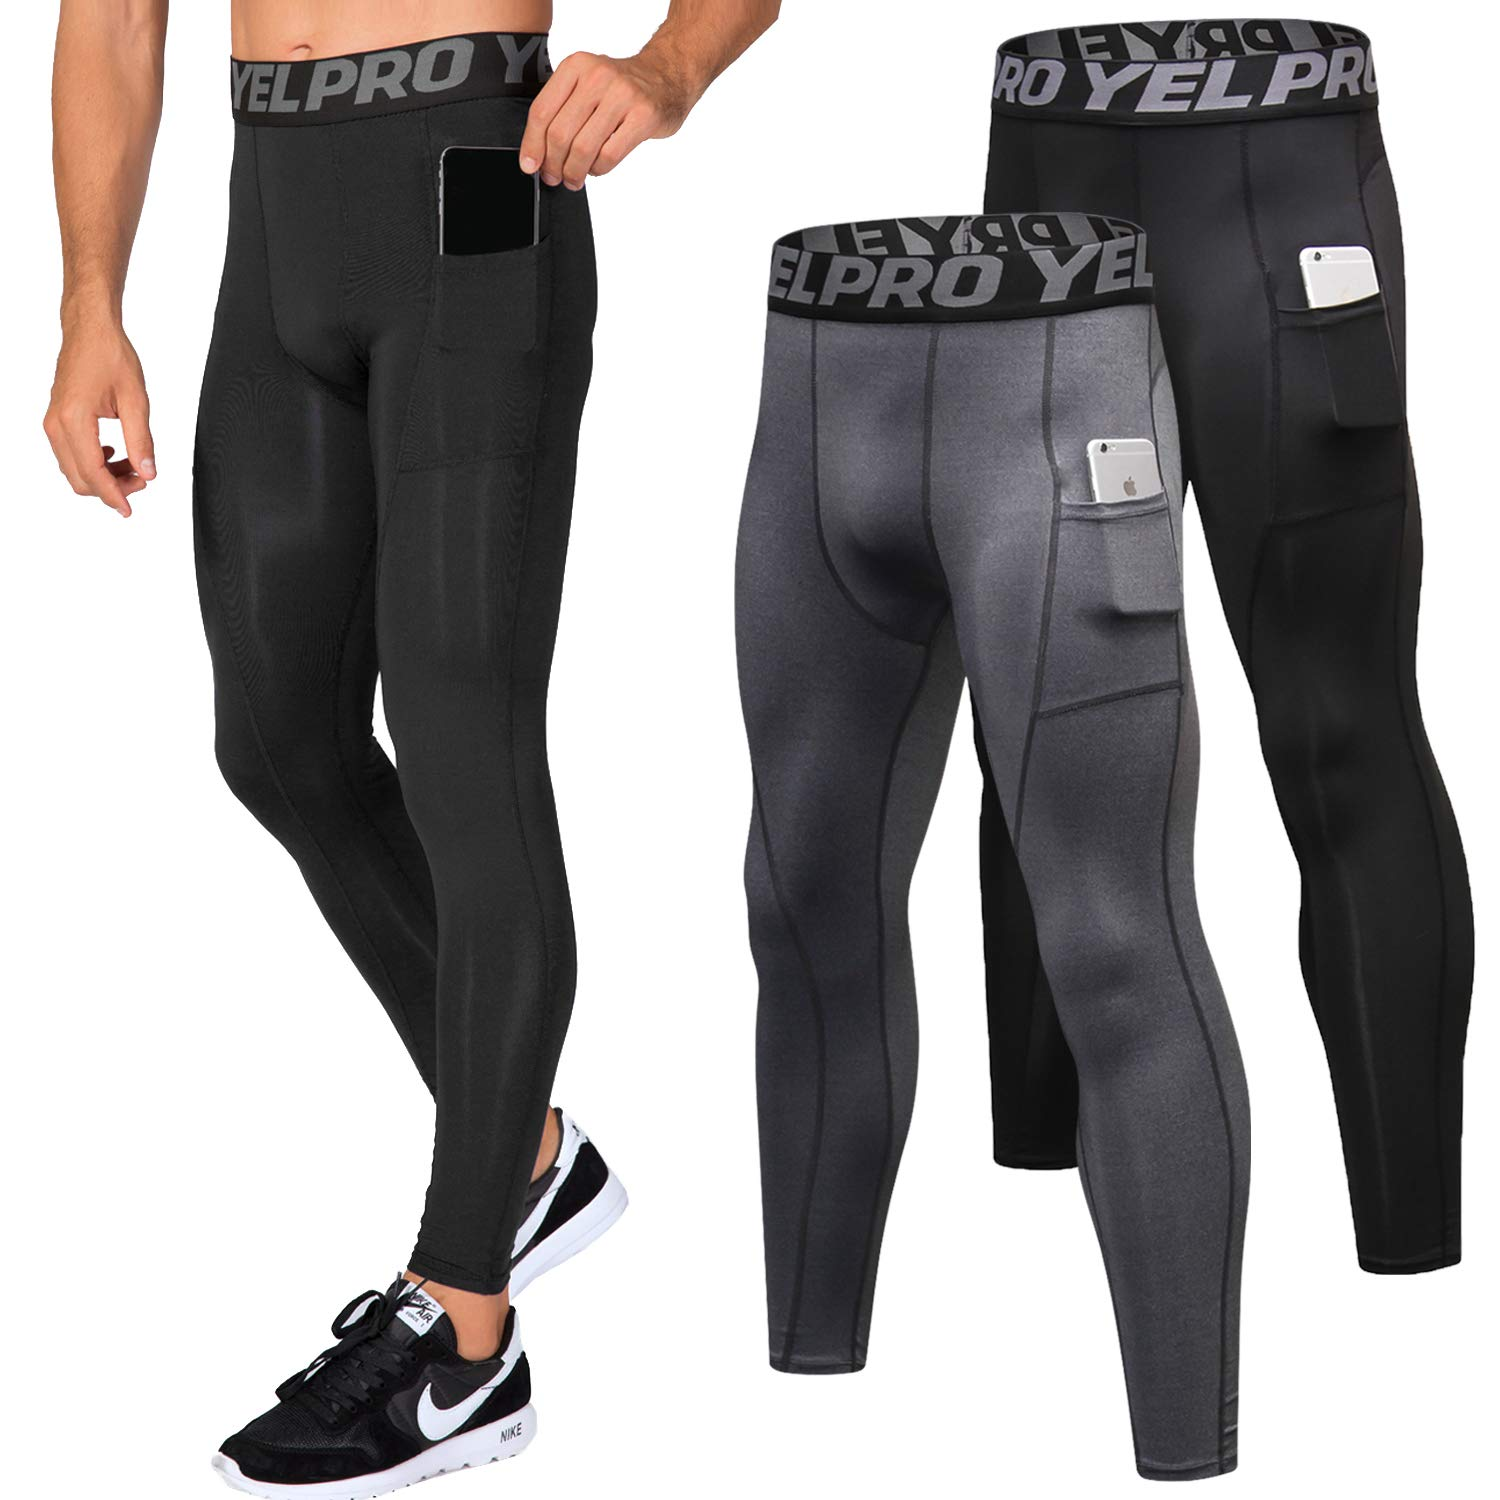 Lavento Men's Compression Pants Baselayer Cool Dry Pocket Running Ankle Leggings Active Tights (2 Pack-3911 Black/Gray,Small) by Lavento